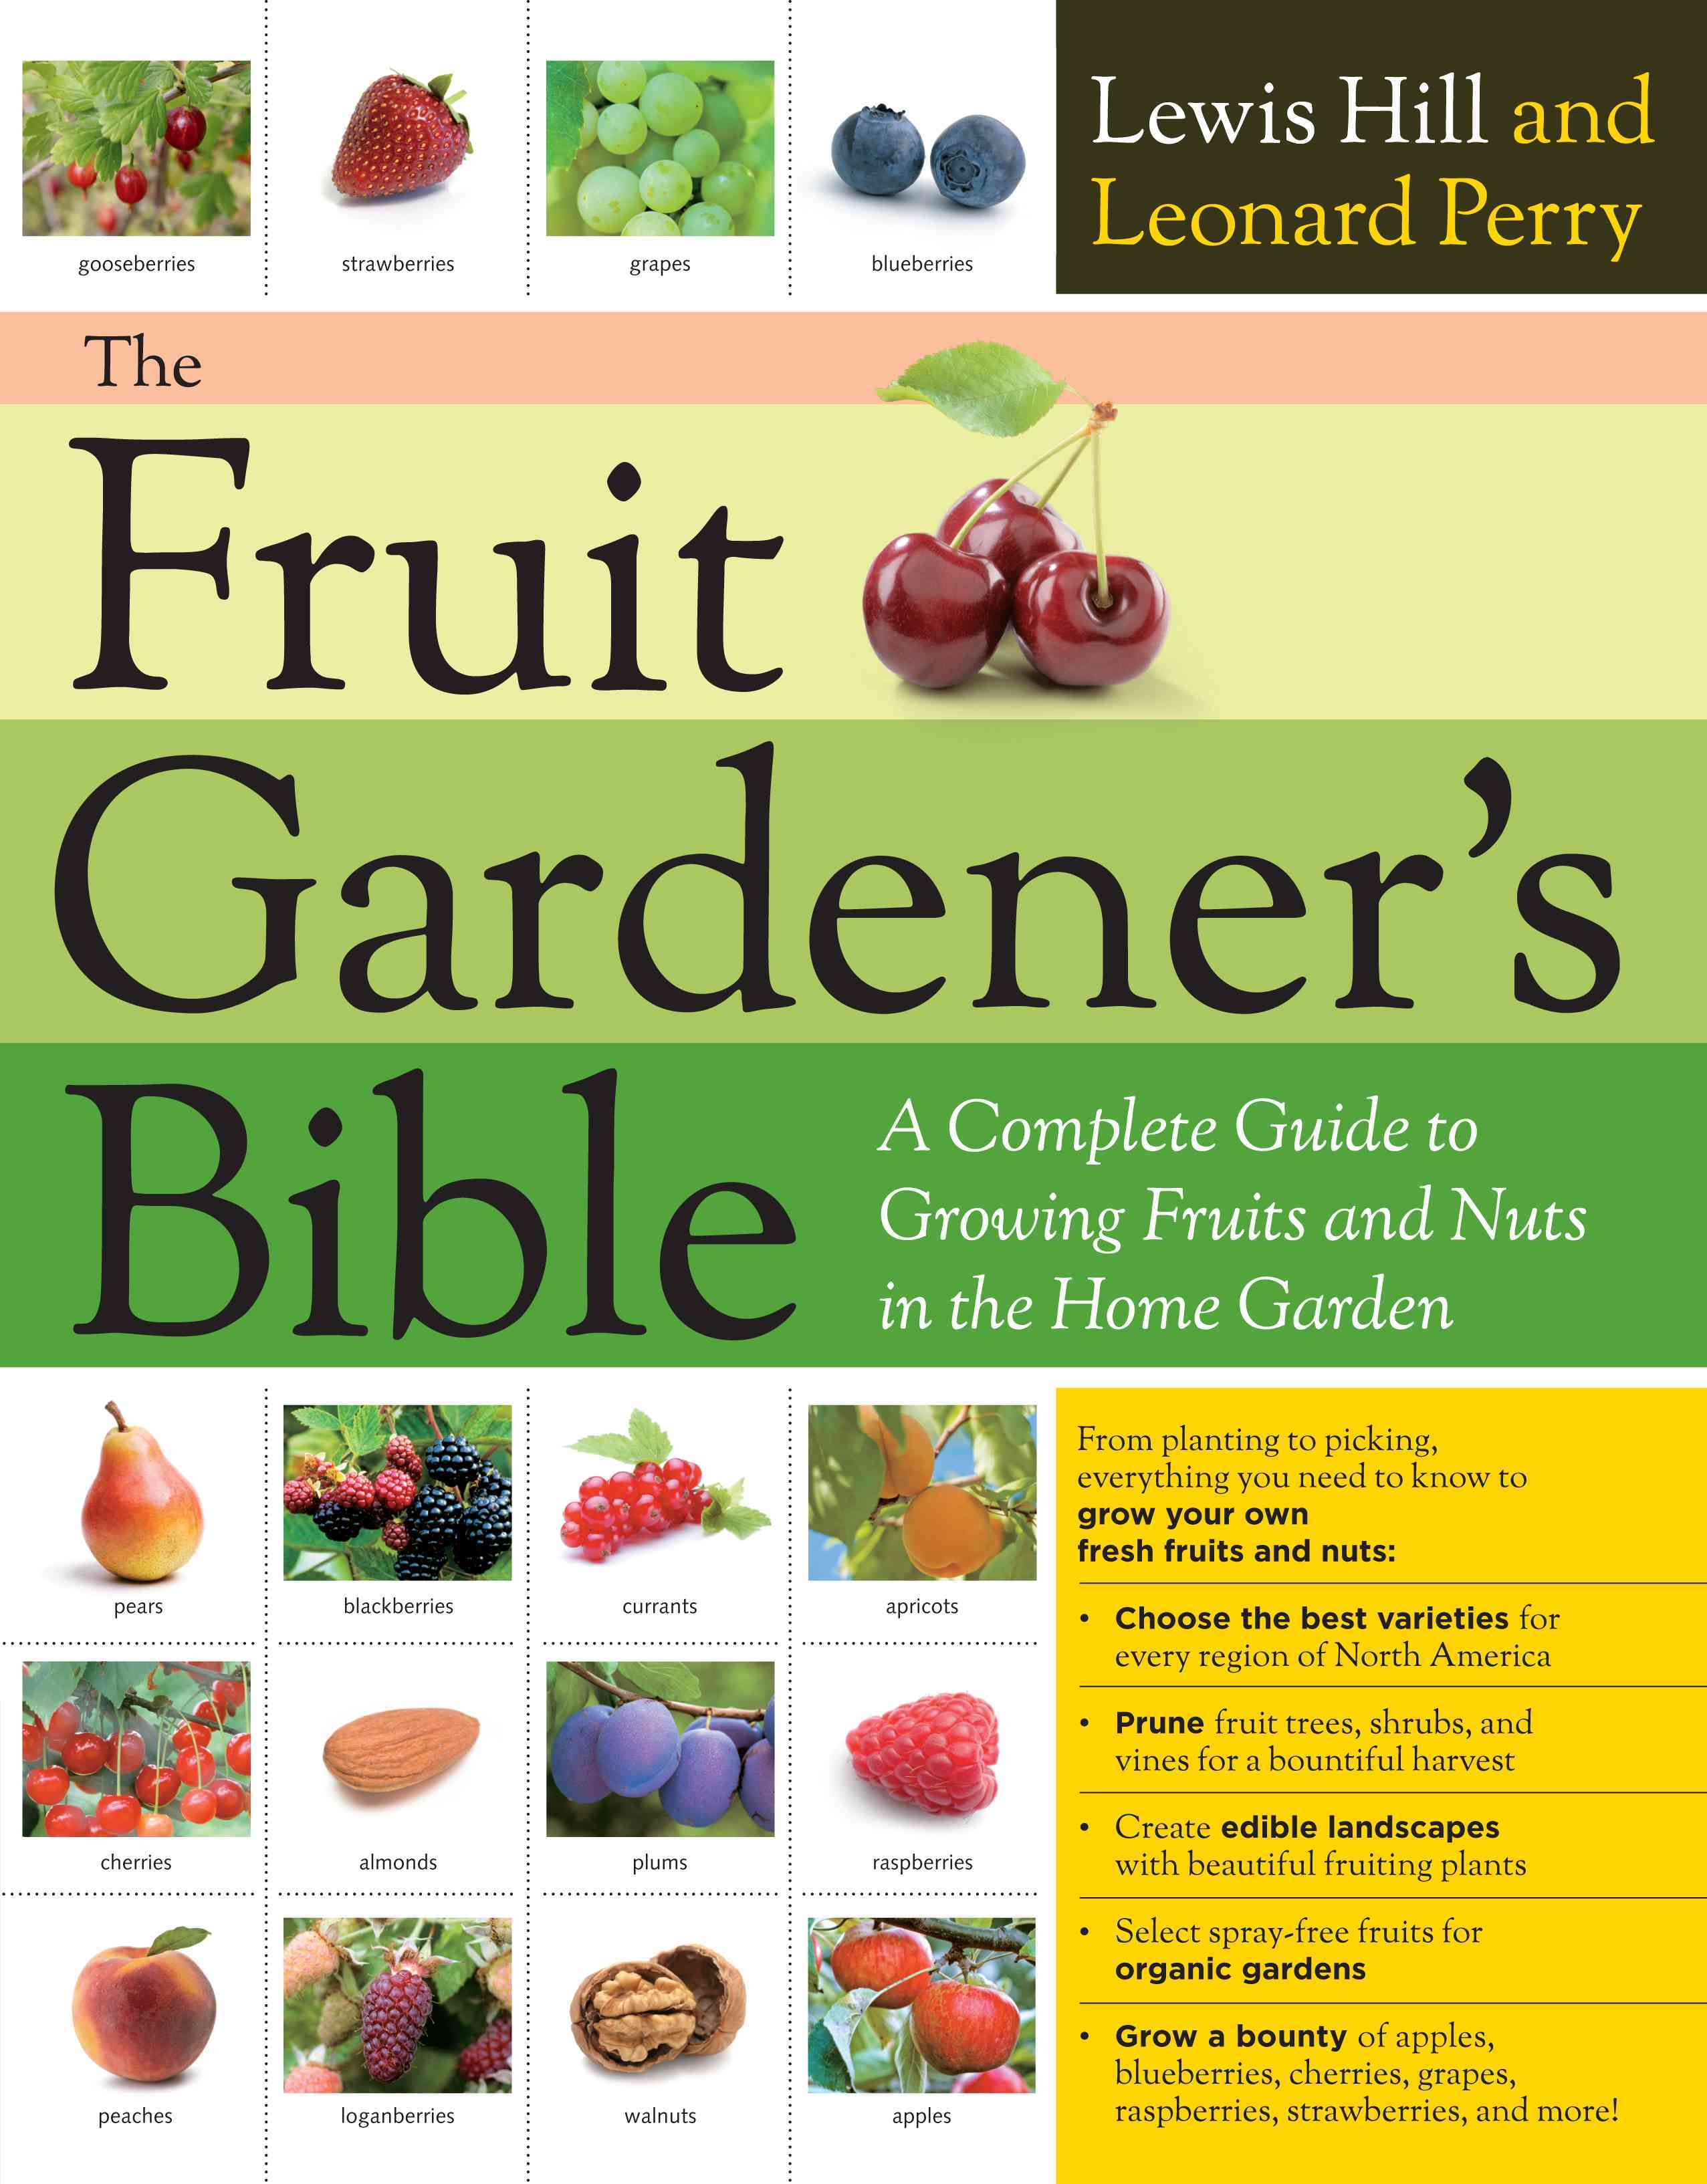 The Fruit Gardener's Bible: A Complete Guide to Growing Fruits and Nuts in the Home Garden (Paperback)